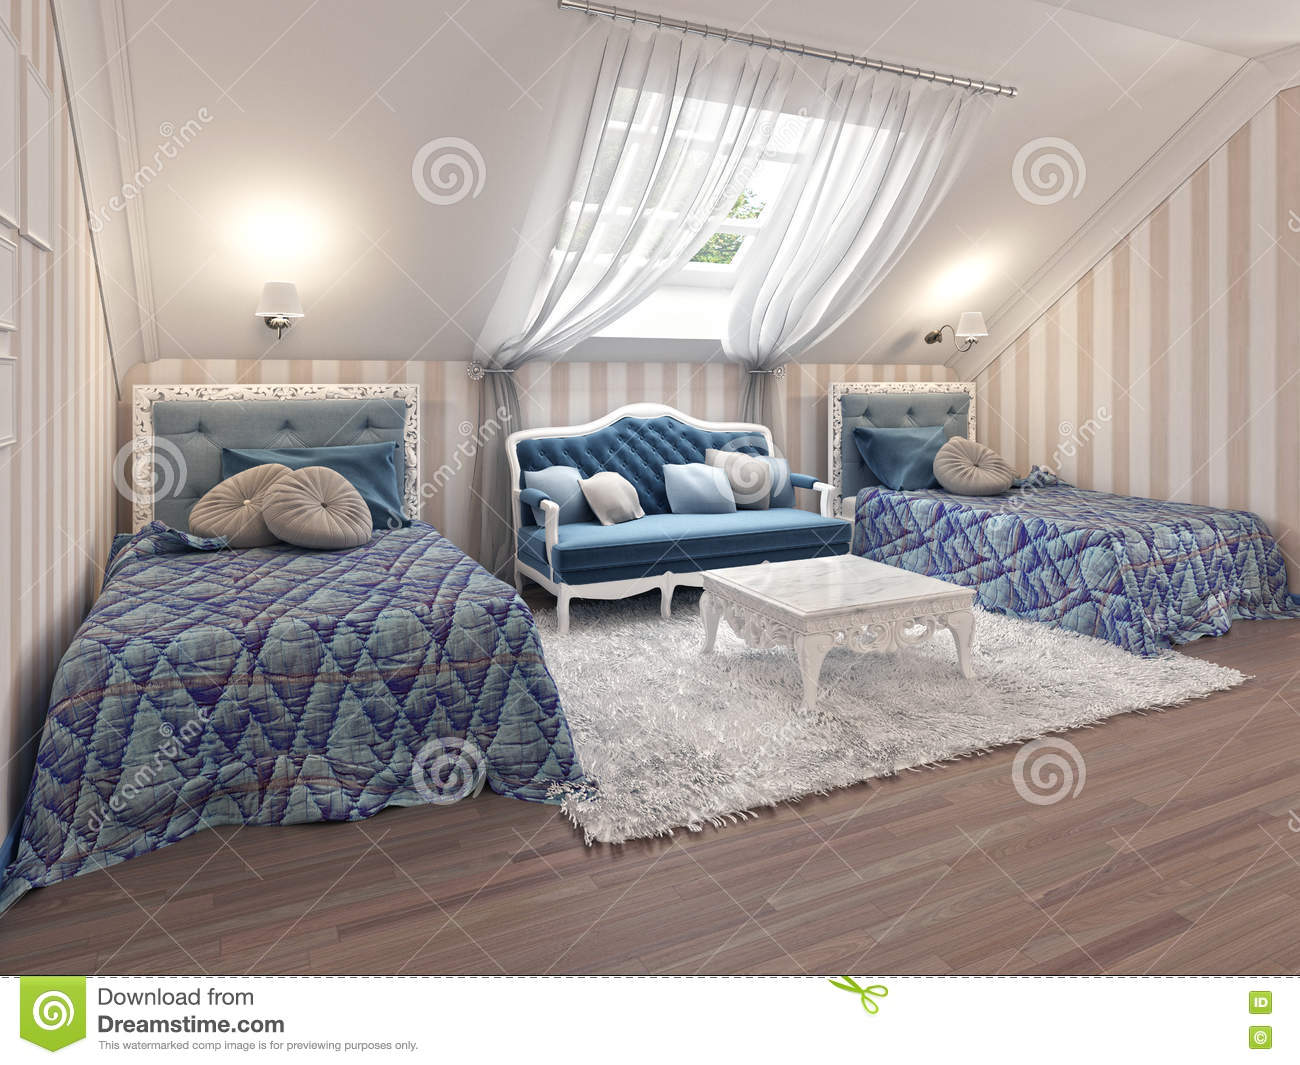 Beds cartoons illustrations vector stock images 623 pictures to download from for Luxury childrens bedroom furniture